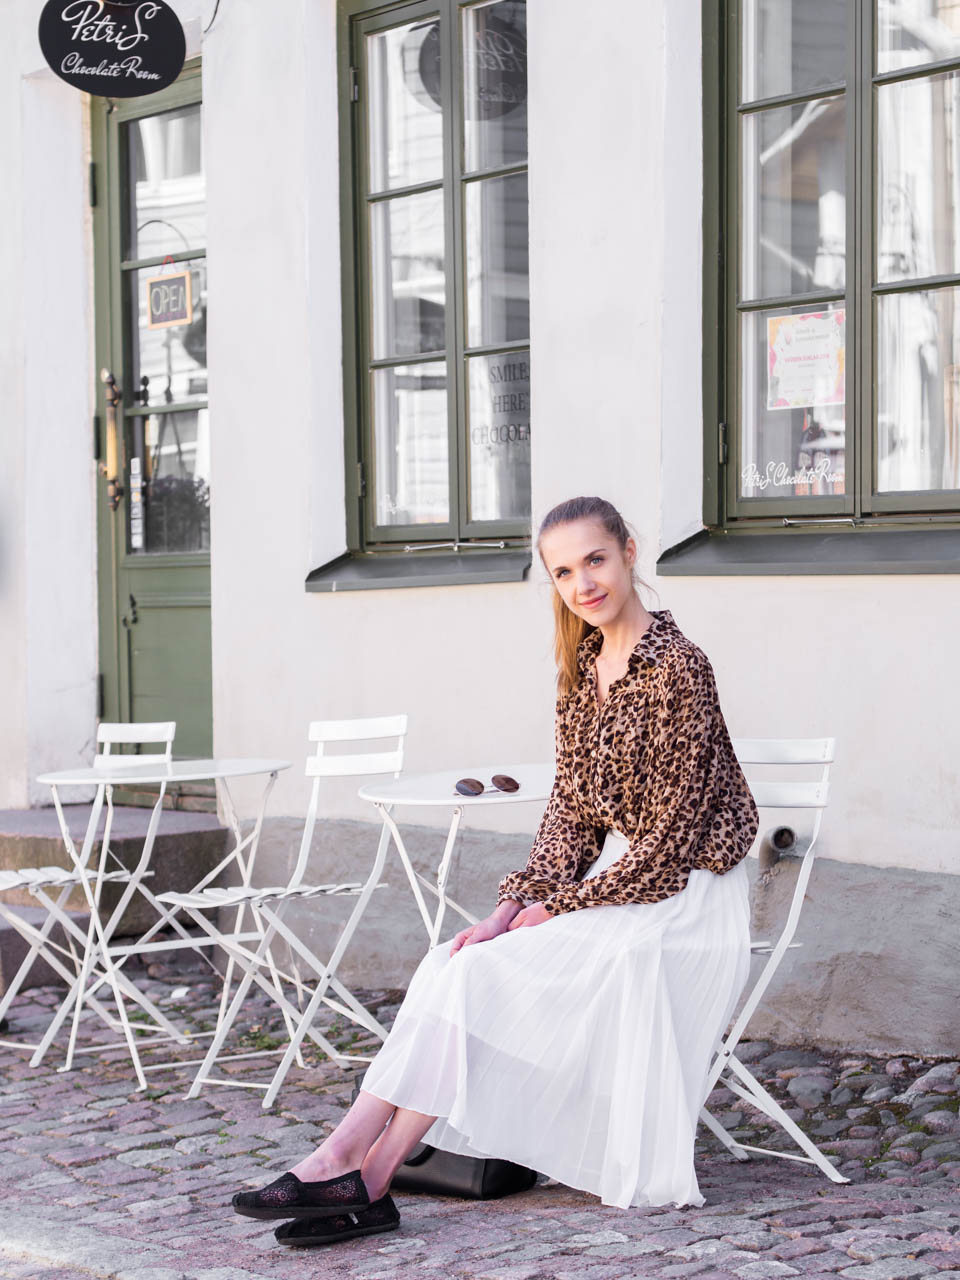 porvoo-summer-guide-cafes-restaurants-shops-fashion-blogger-outfit-leopard-print-shirt-white-pleated-midi-skirt